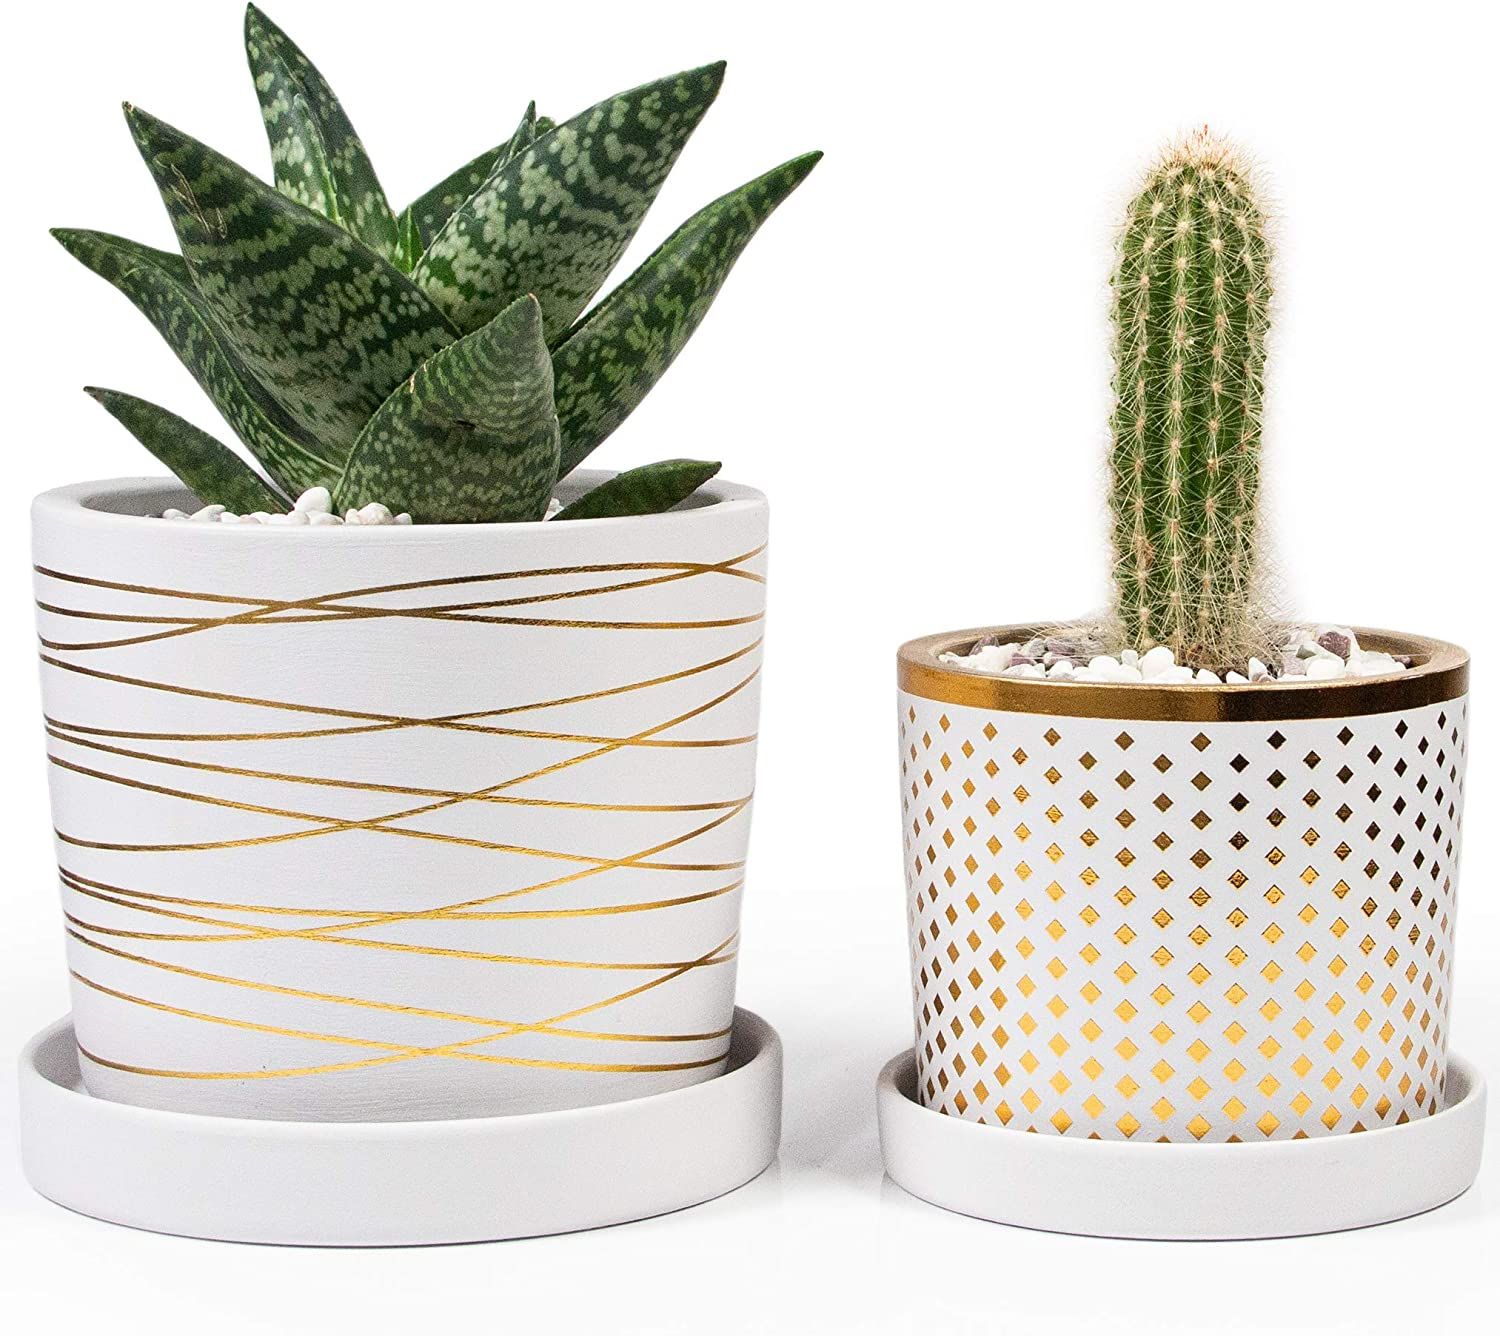 White and Gold Ceramic Pot Bundle - 6 Inch and 4.5 Inch pots - Includes Saucers, Drainage Plugs, and Decorative Pebbles